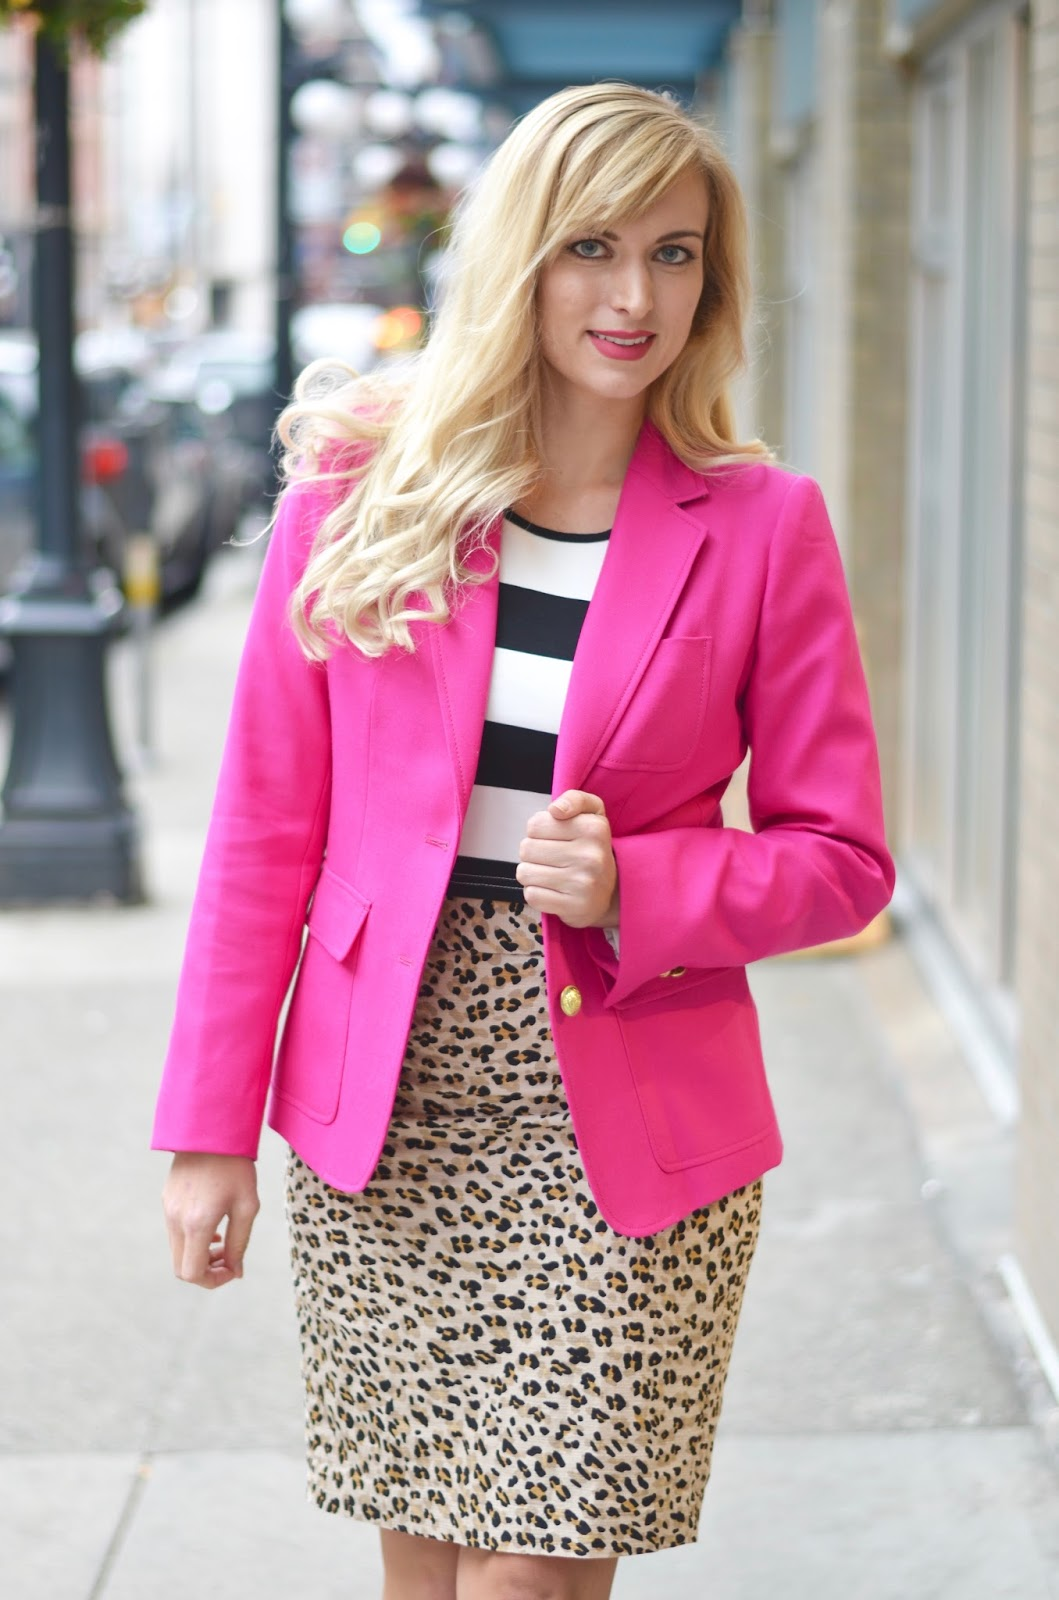 elle woods office outfit inspiration